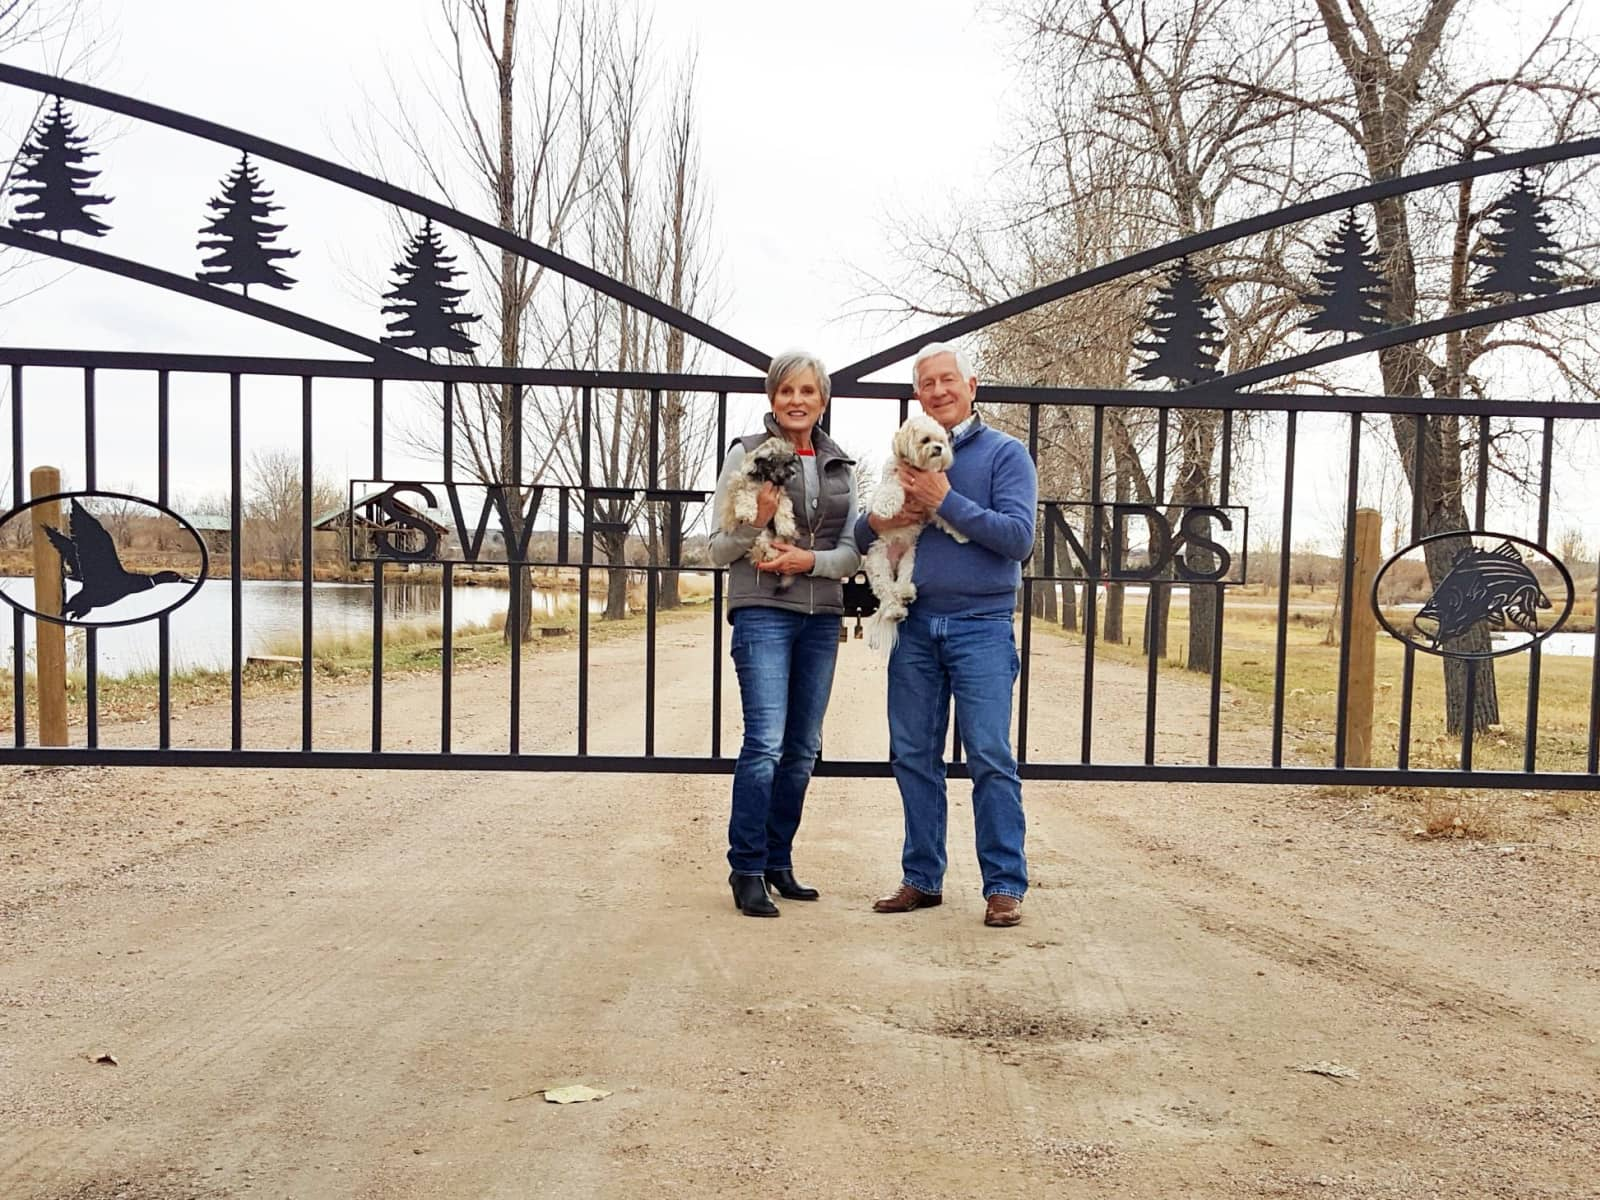 Jeanne & John from Fort Collins, Colorado, United States